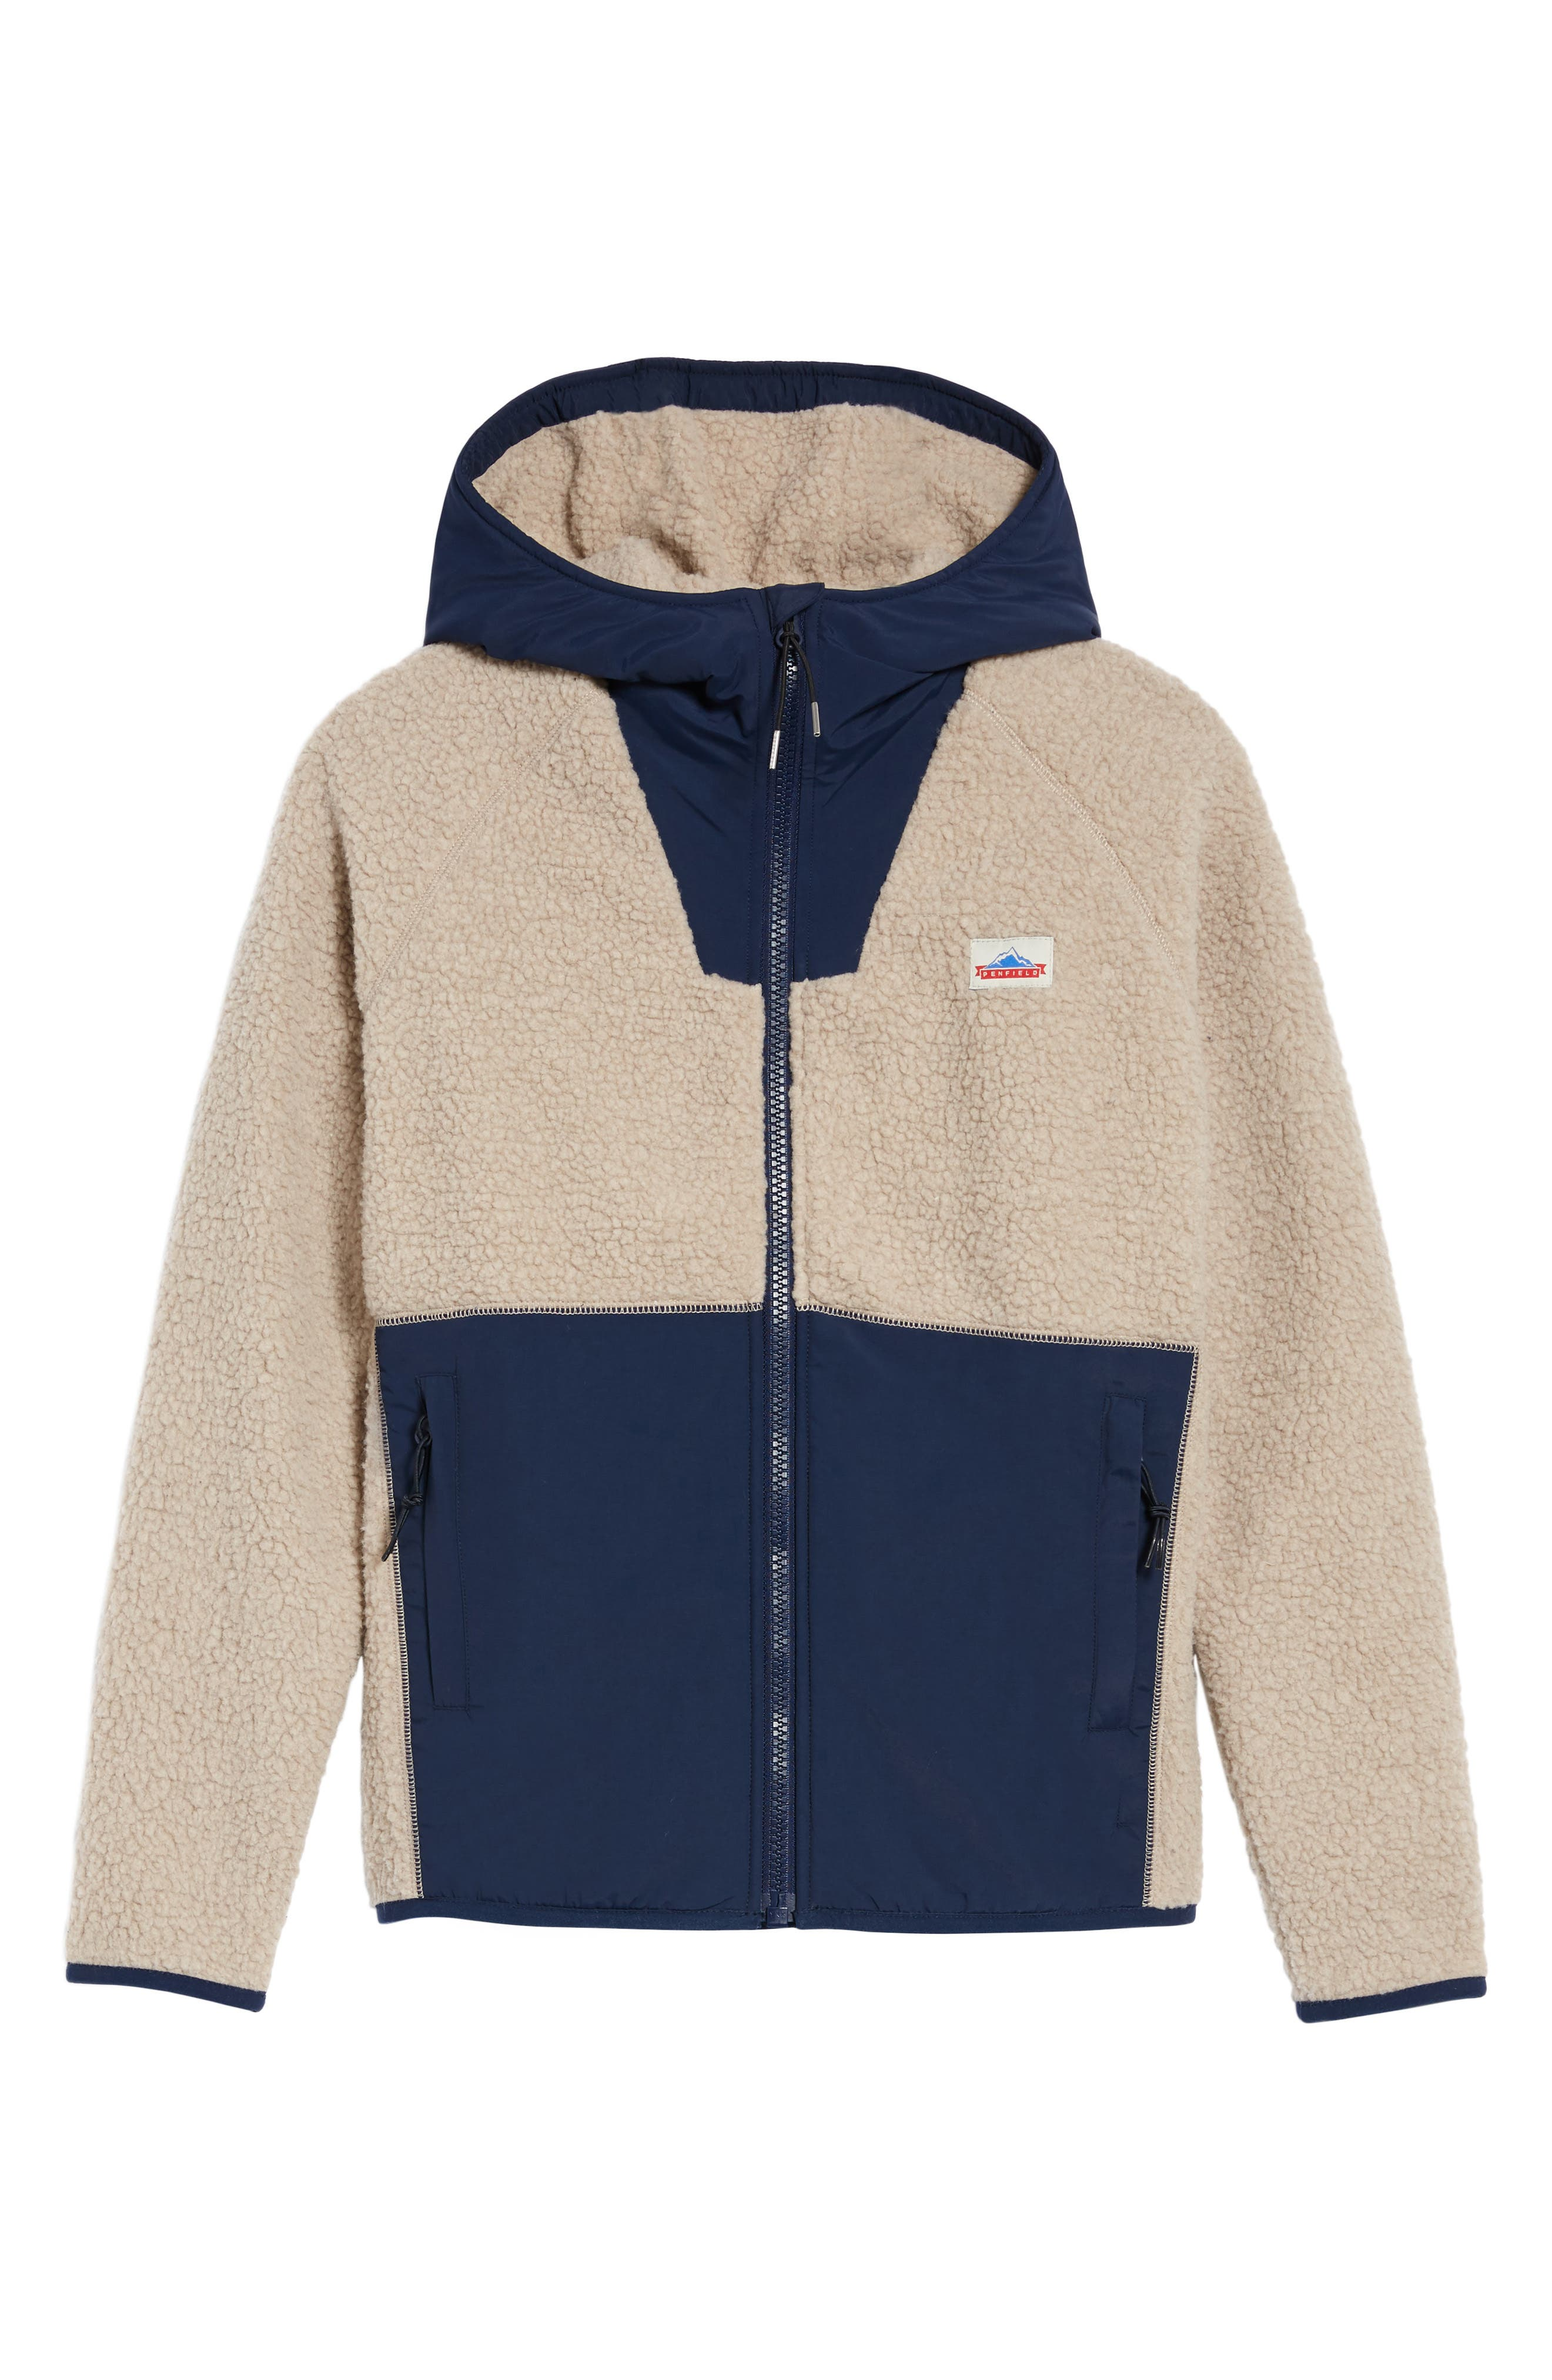 Vaughn Fleece Jacket,                             Alternate thumbnail 6, color,                             Tan